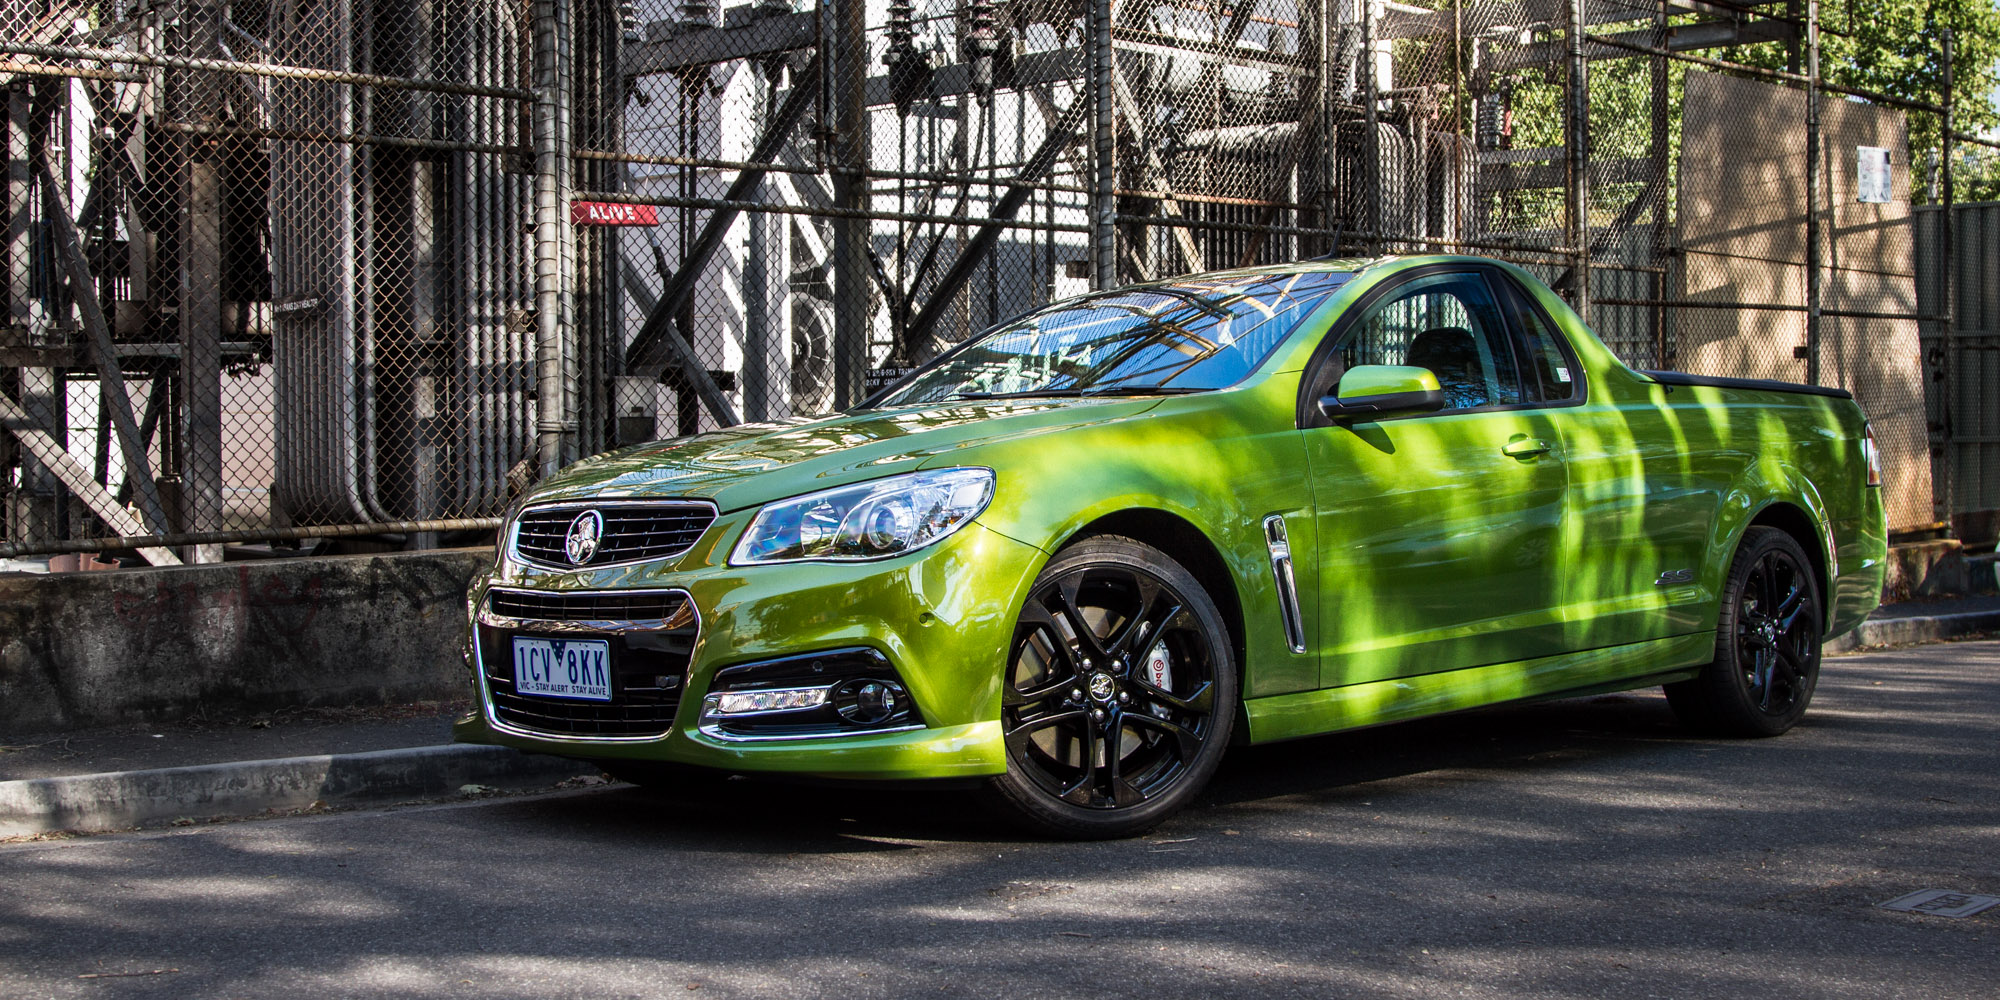 2016 Holden Commodore SS Series II to get 6 2L V8 with 304kW